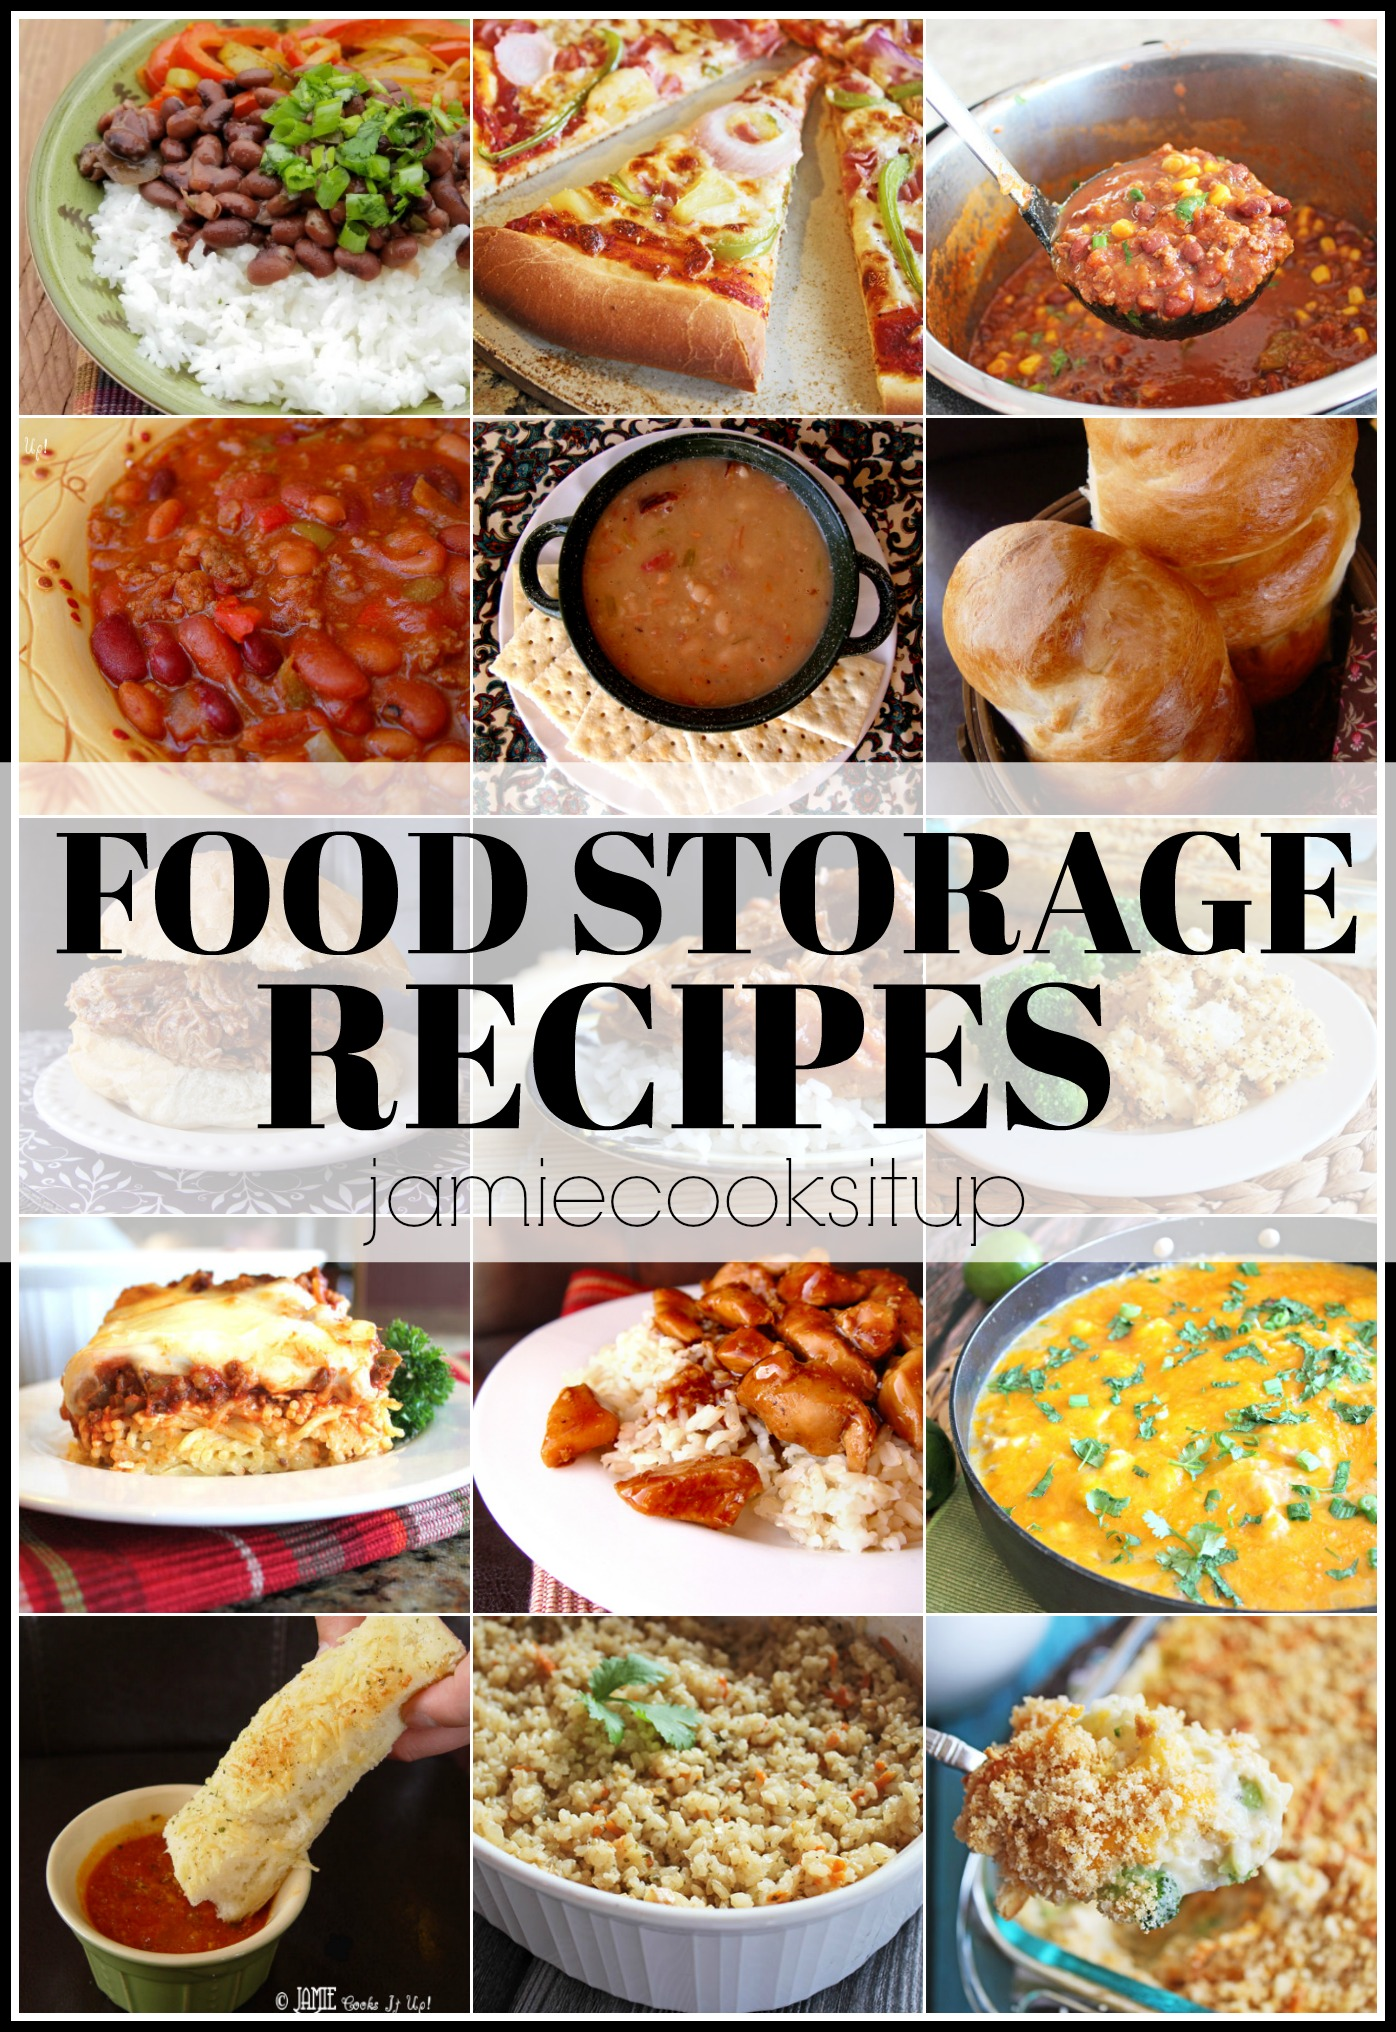 Food Storage Recipes for you and your loved ones